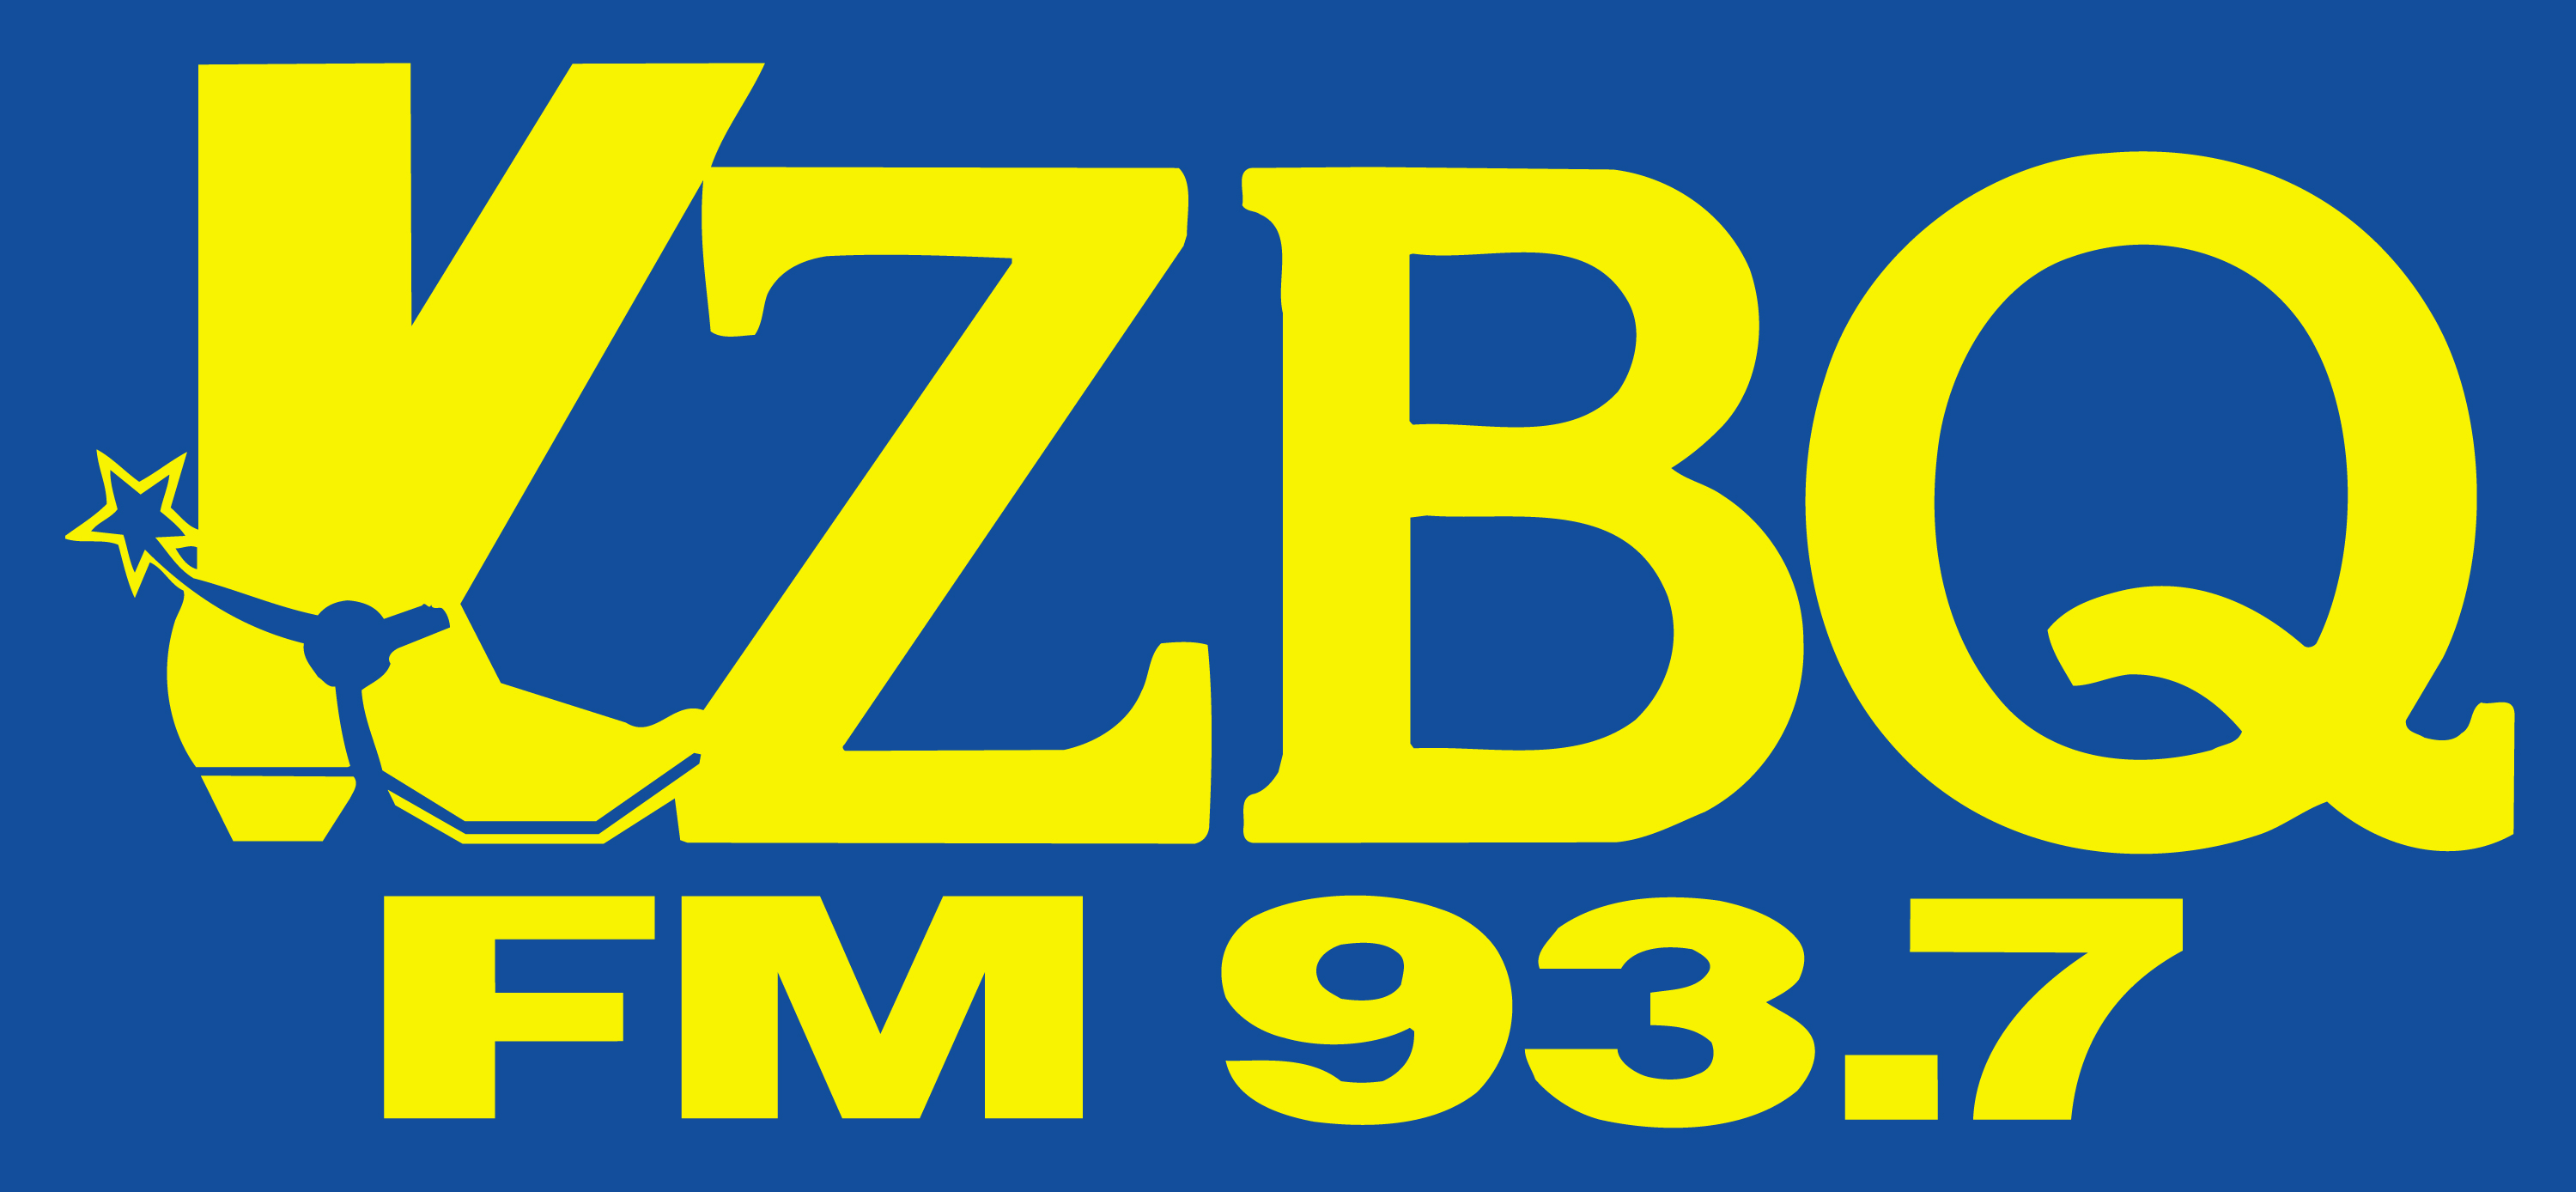 KZBQ FM 93.7 logo